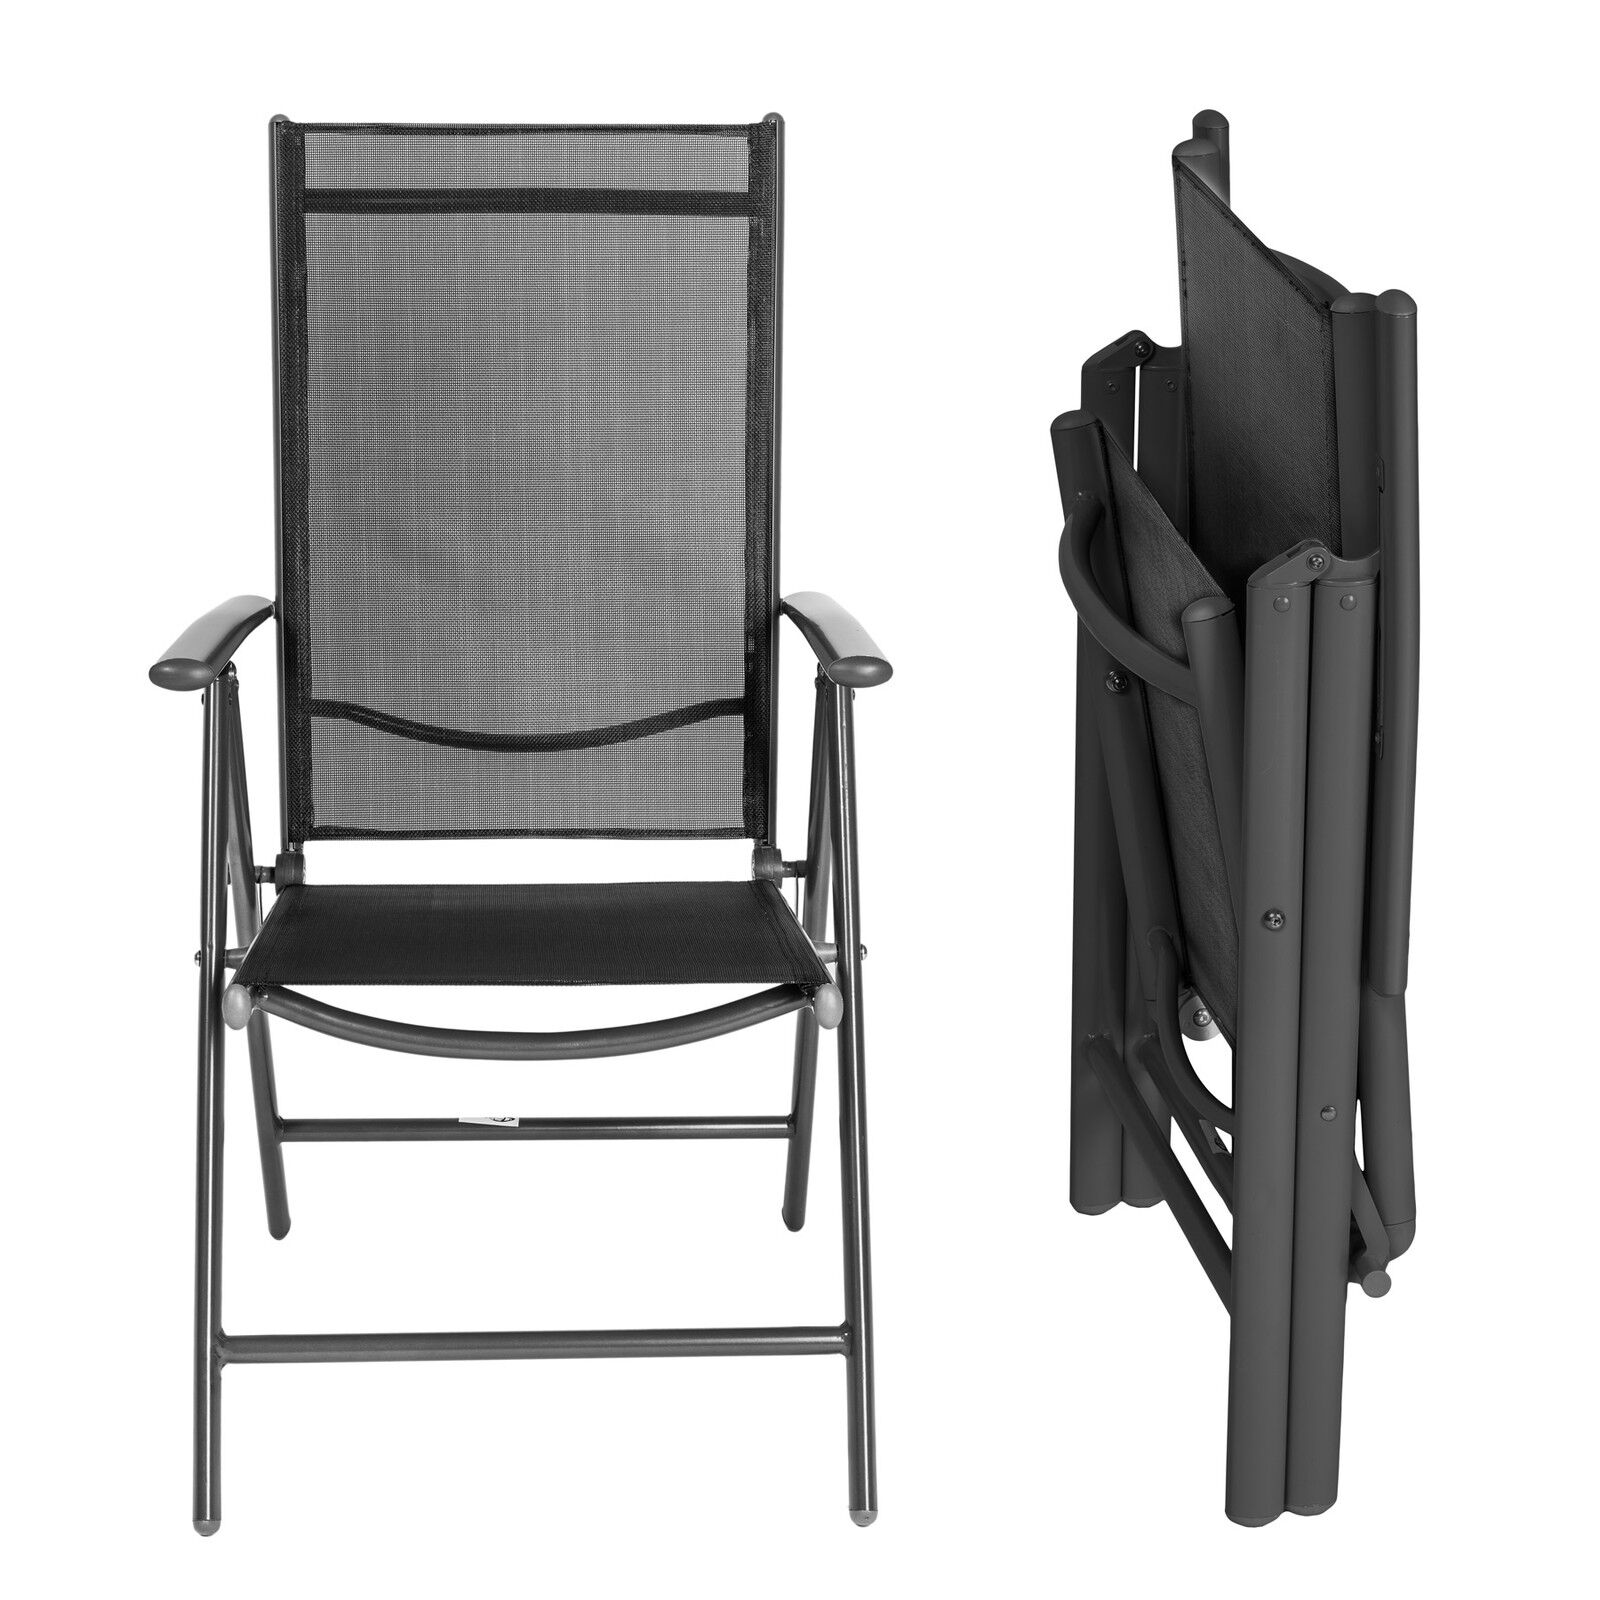 4er set alu klappstuhl gartenstuhl aluminium campingstuhl. Black Bedroom Furniture Sets. Home Design Ideas